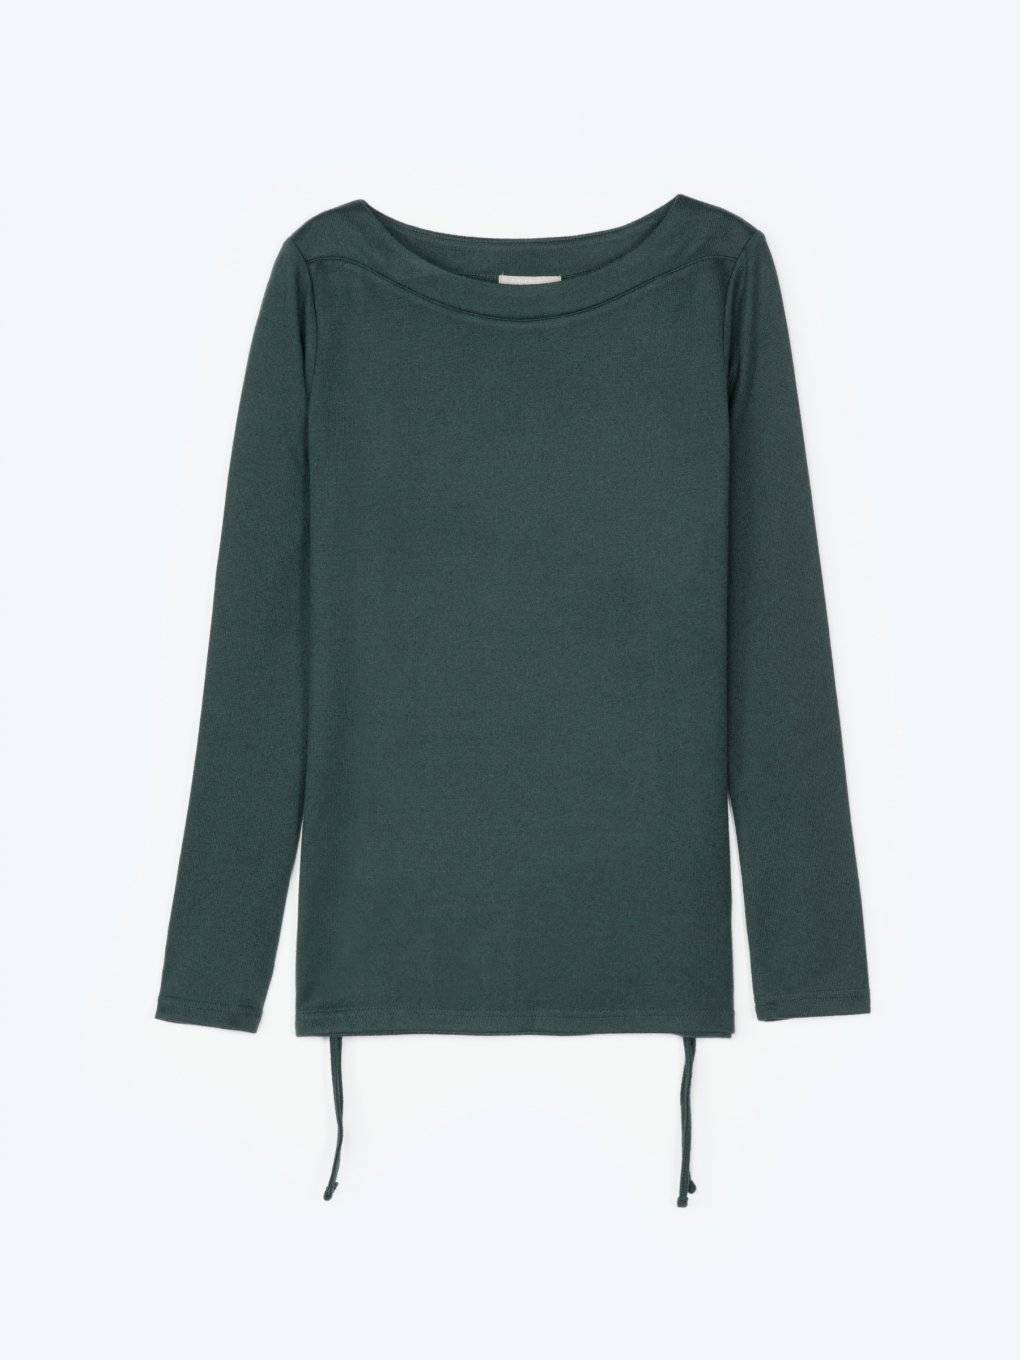 Long sleeved top with side strings